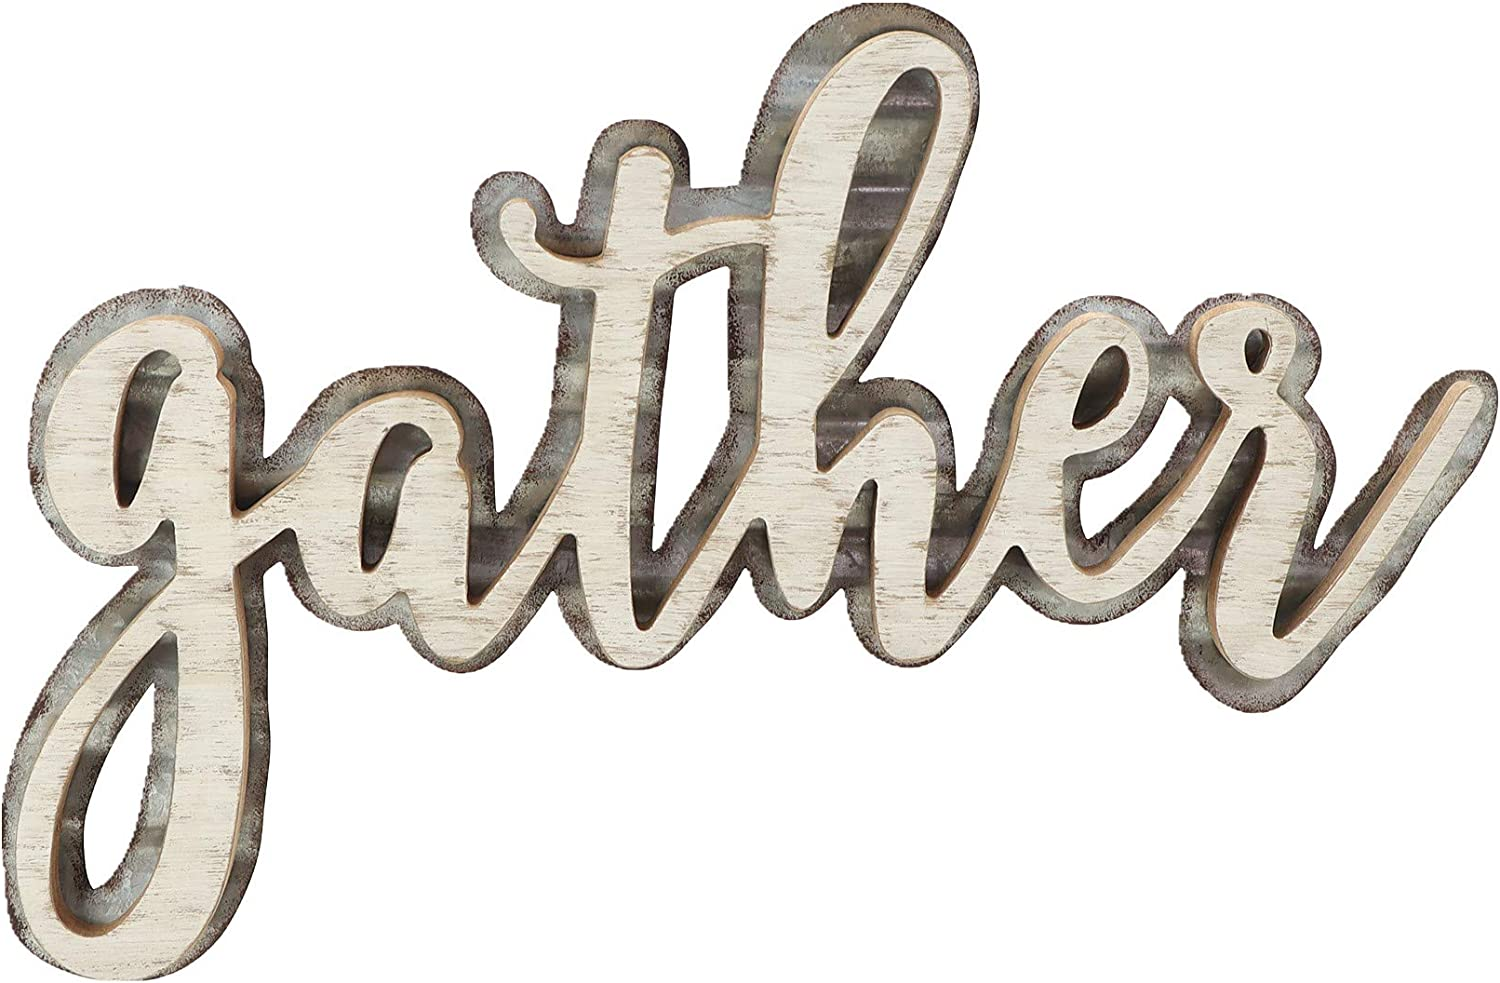 Paris Loft Gather Wood Metal Cutout Letter Signs for Home Decor|Rustic White Farmhouse Gather Hanging Signs for Kitchen 15.5x0.5x10.25''